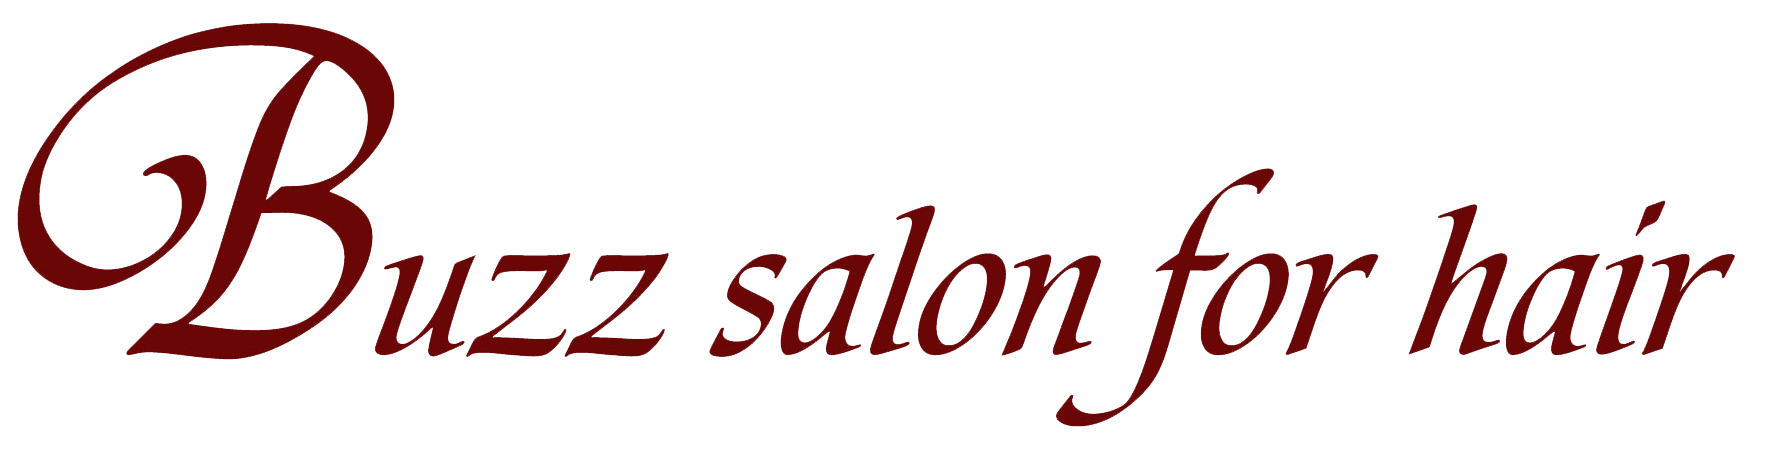 Buzz salon for hair